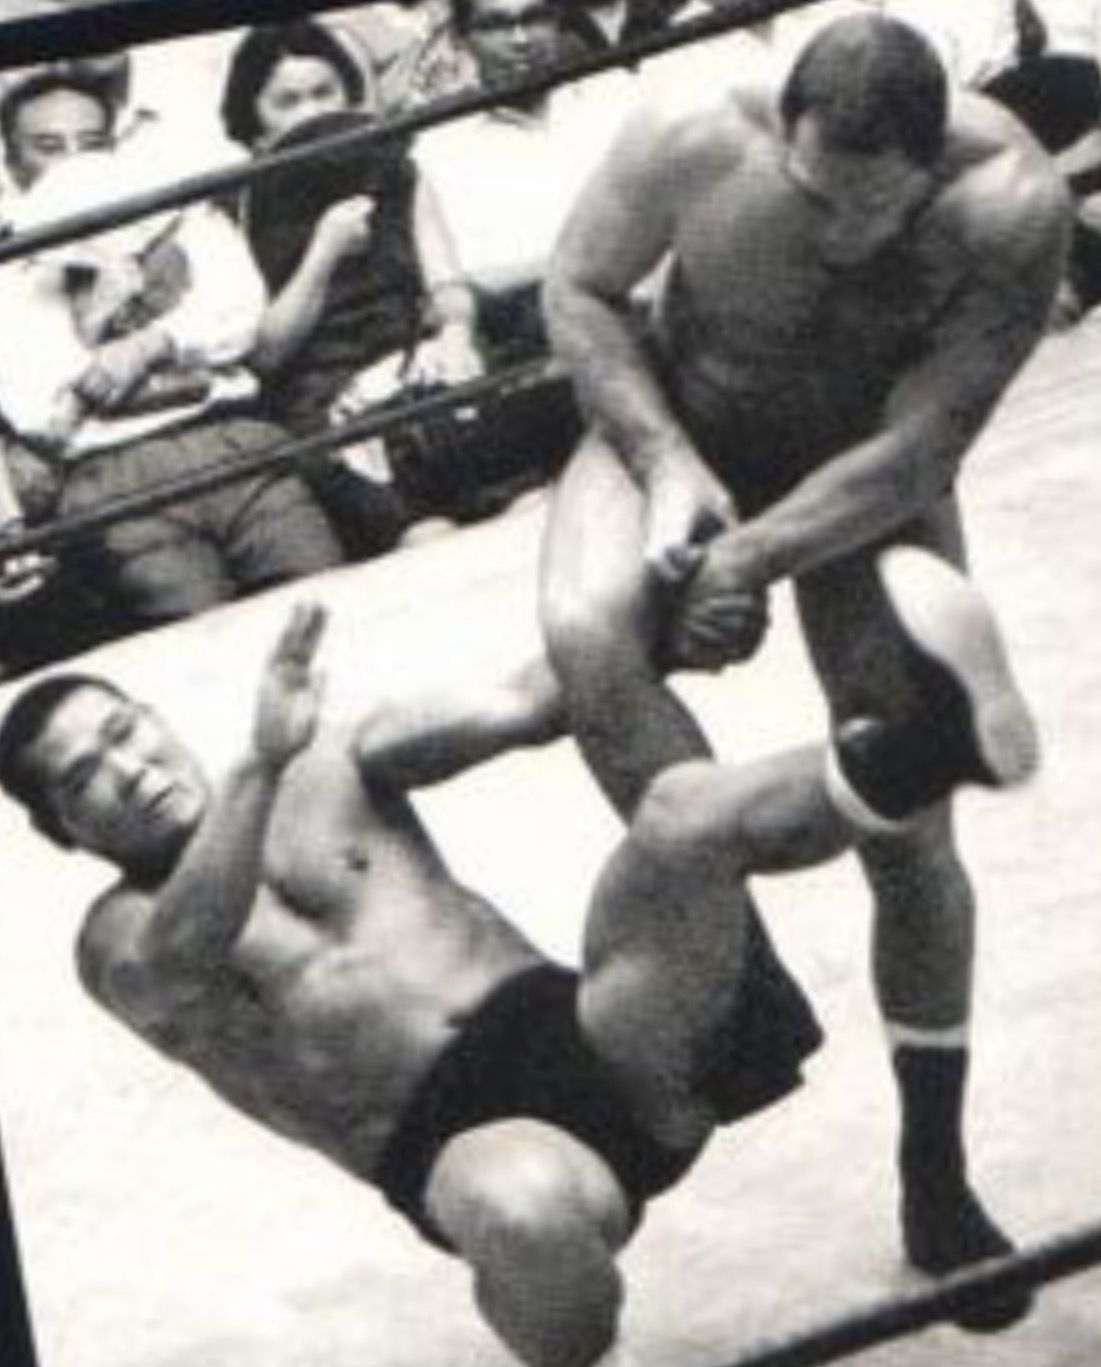 Karl Gotch vs Michiaki Yoshimura, Japan, 1966